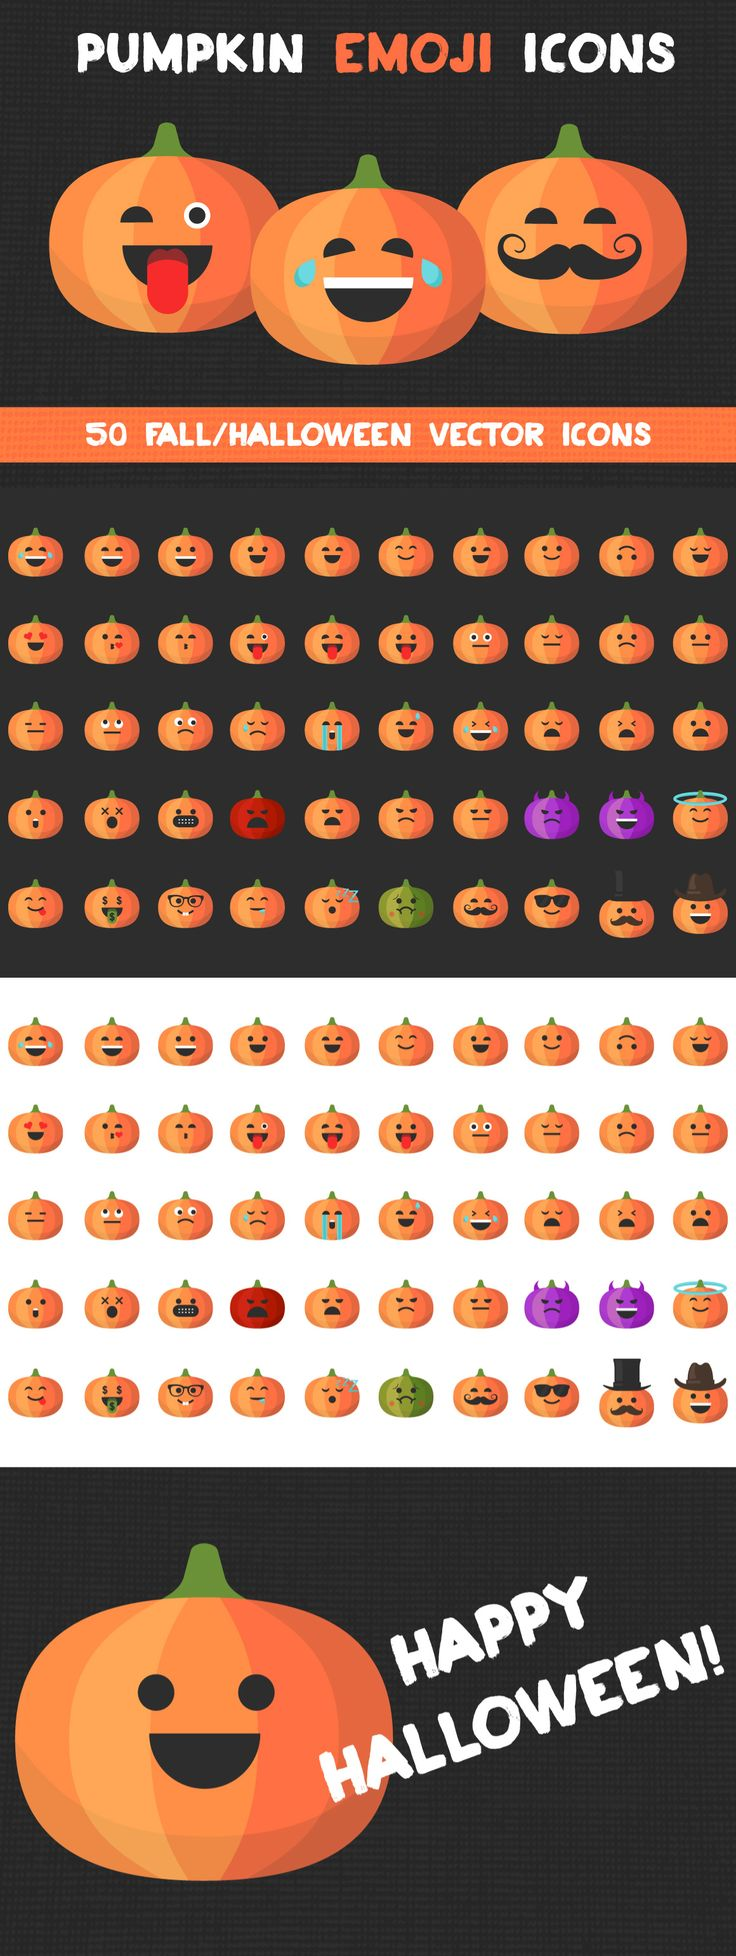 PUMPKIN EMOJI ICONS – Set of 50 fall/halloween vector icons. Download the unique emoji icons designed by (@Rachel Lovett). They are perfect for celebrating the fall season and of course Halloween (which lets be honest, is the best holiday). Click through to get this downloadable on Creative Market.